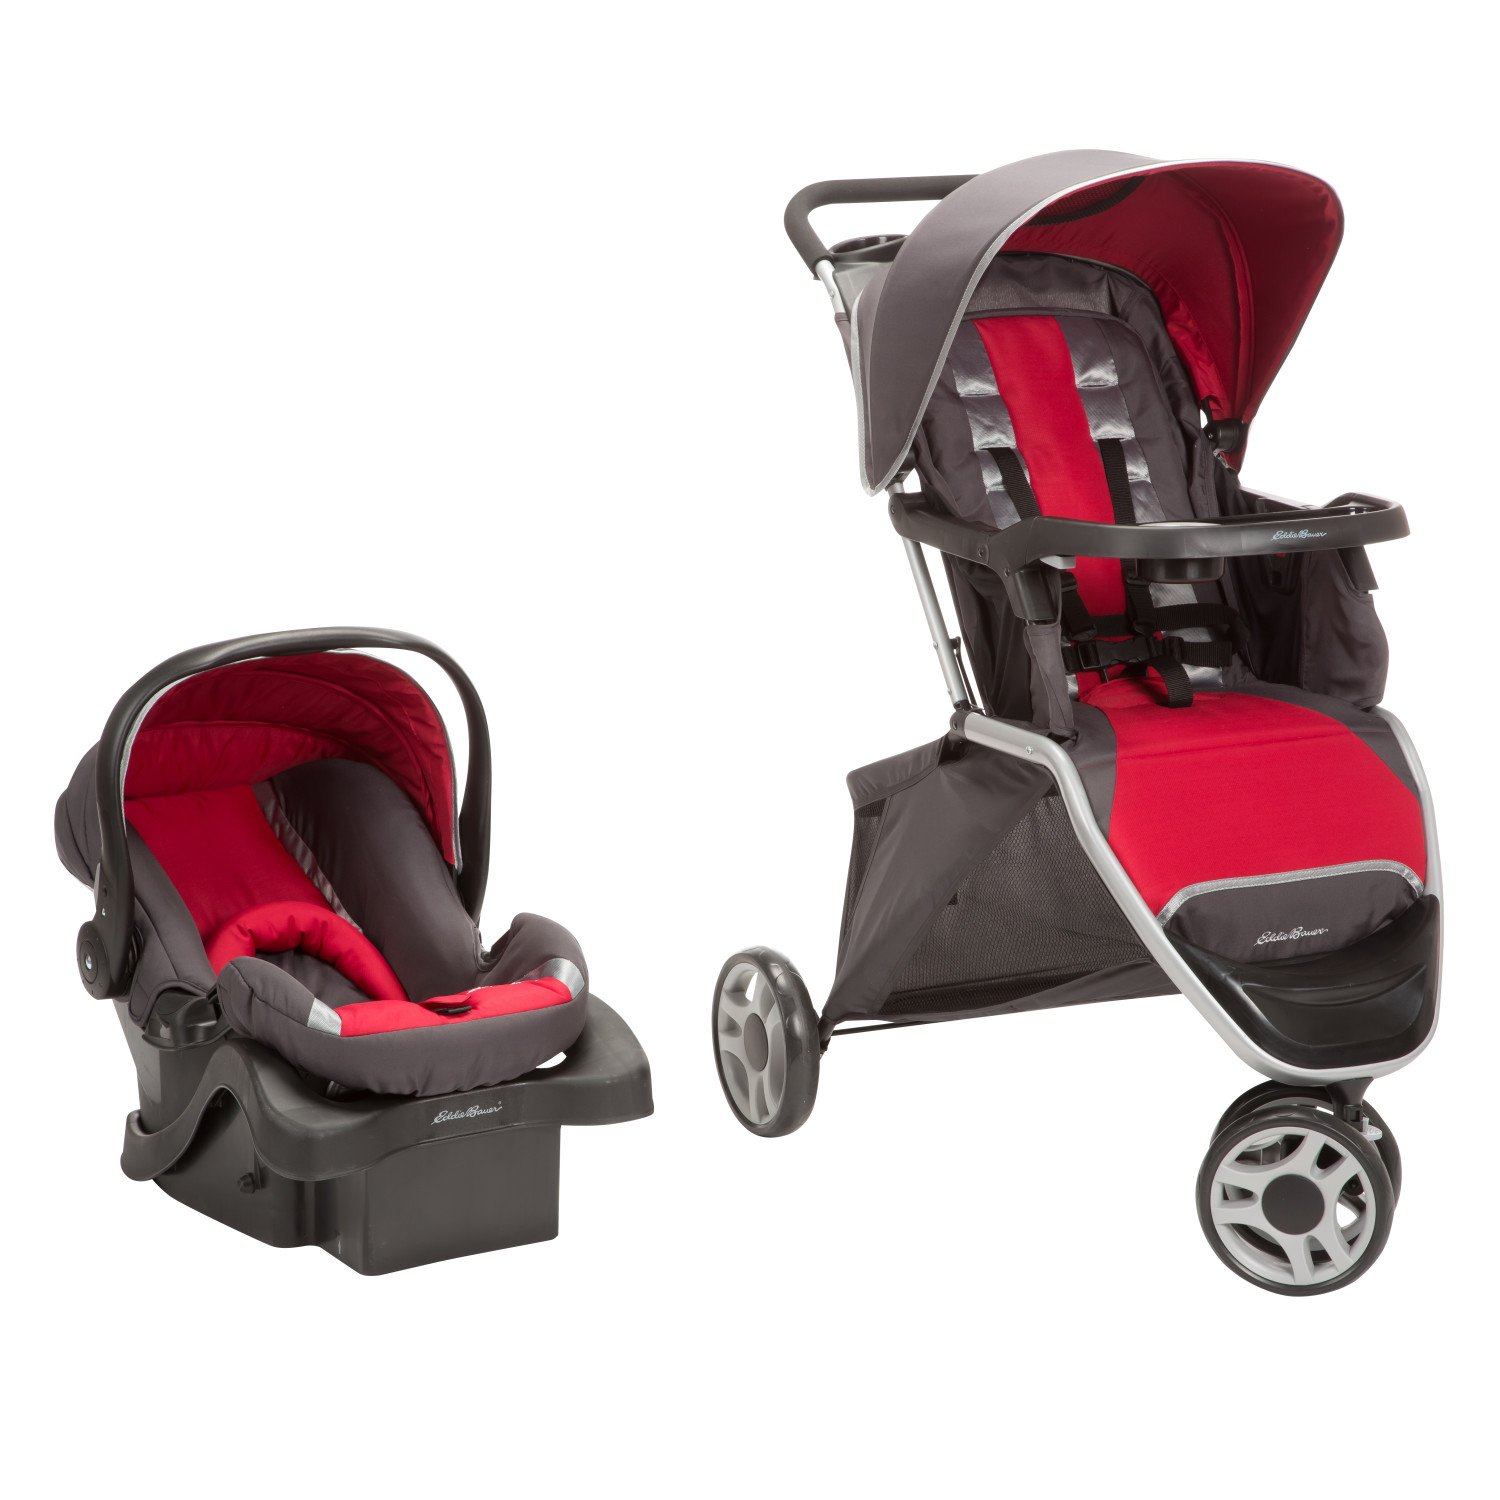 Top 5 Best Infant Travel Systems Reviews in 2021 8